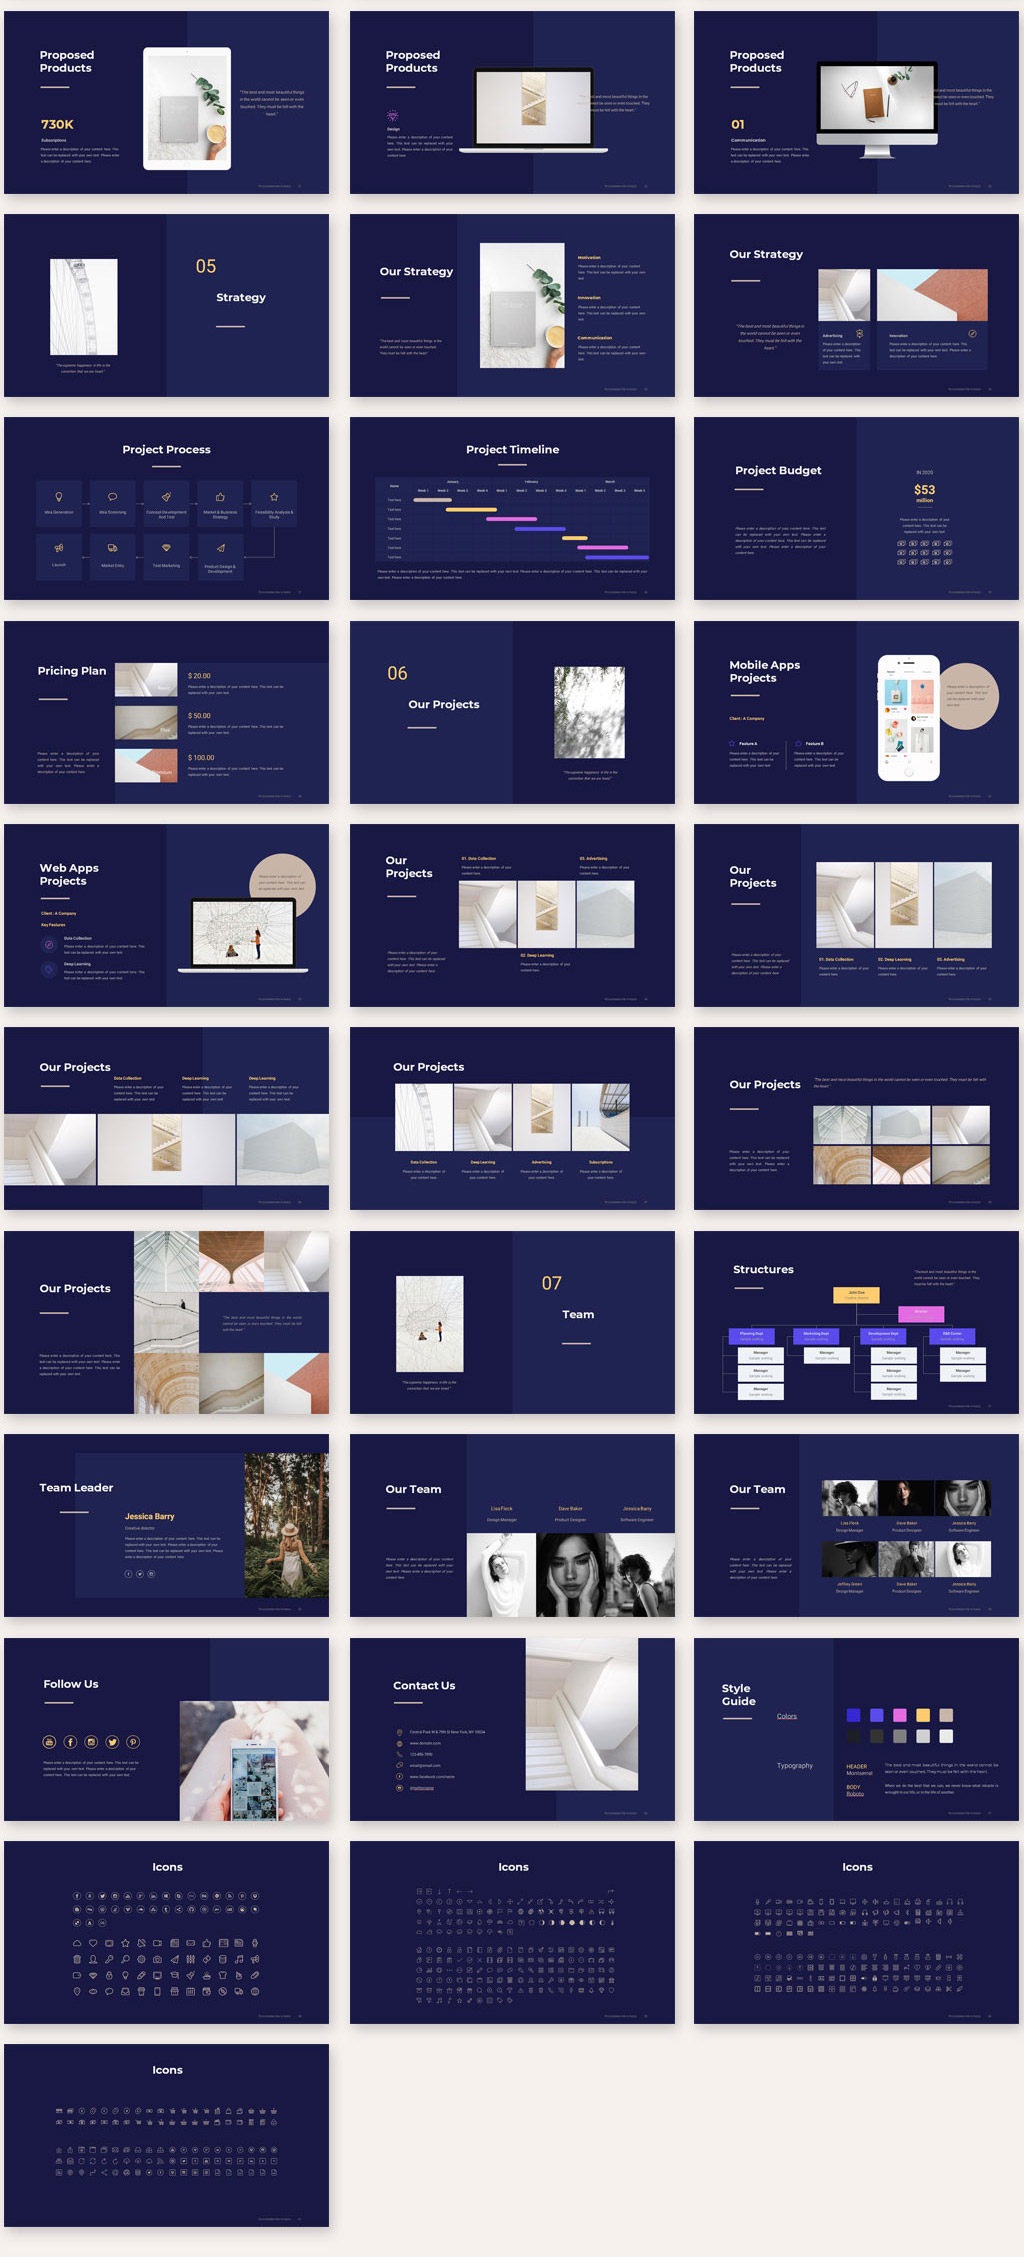 Project Proposal PowerPoint Template02